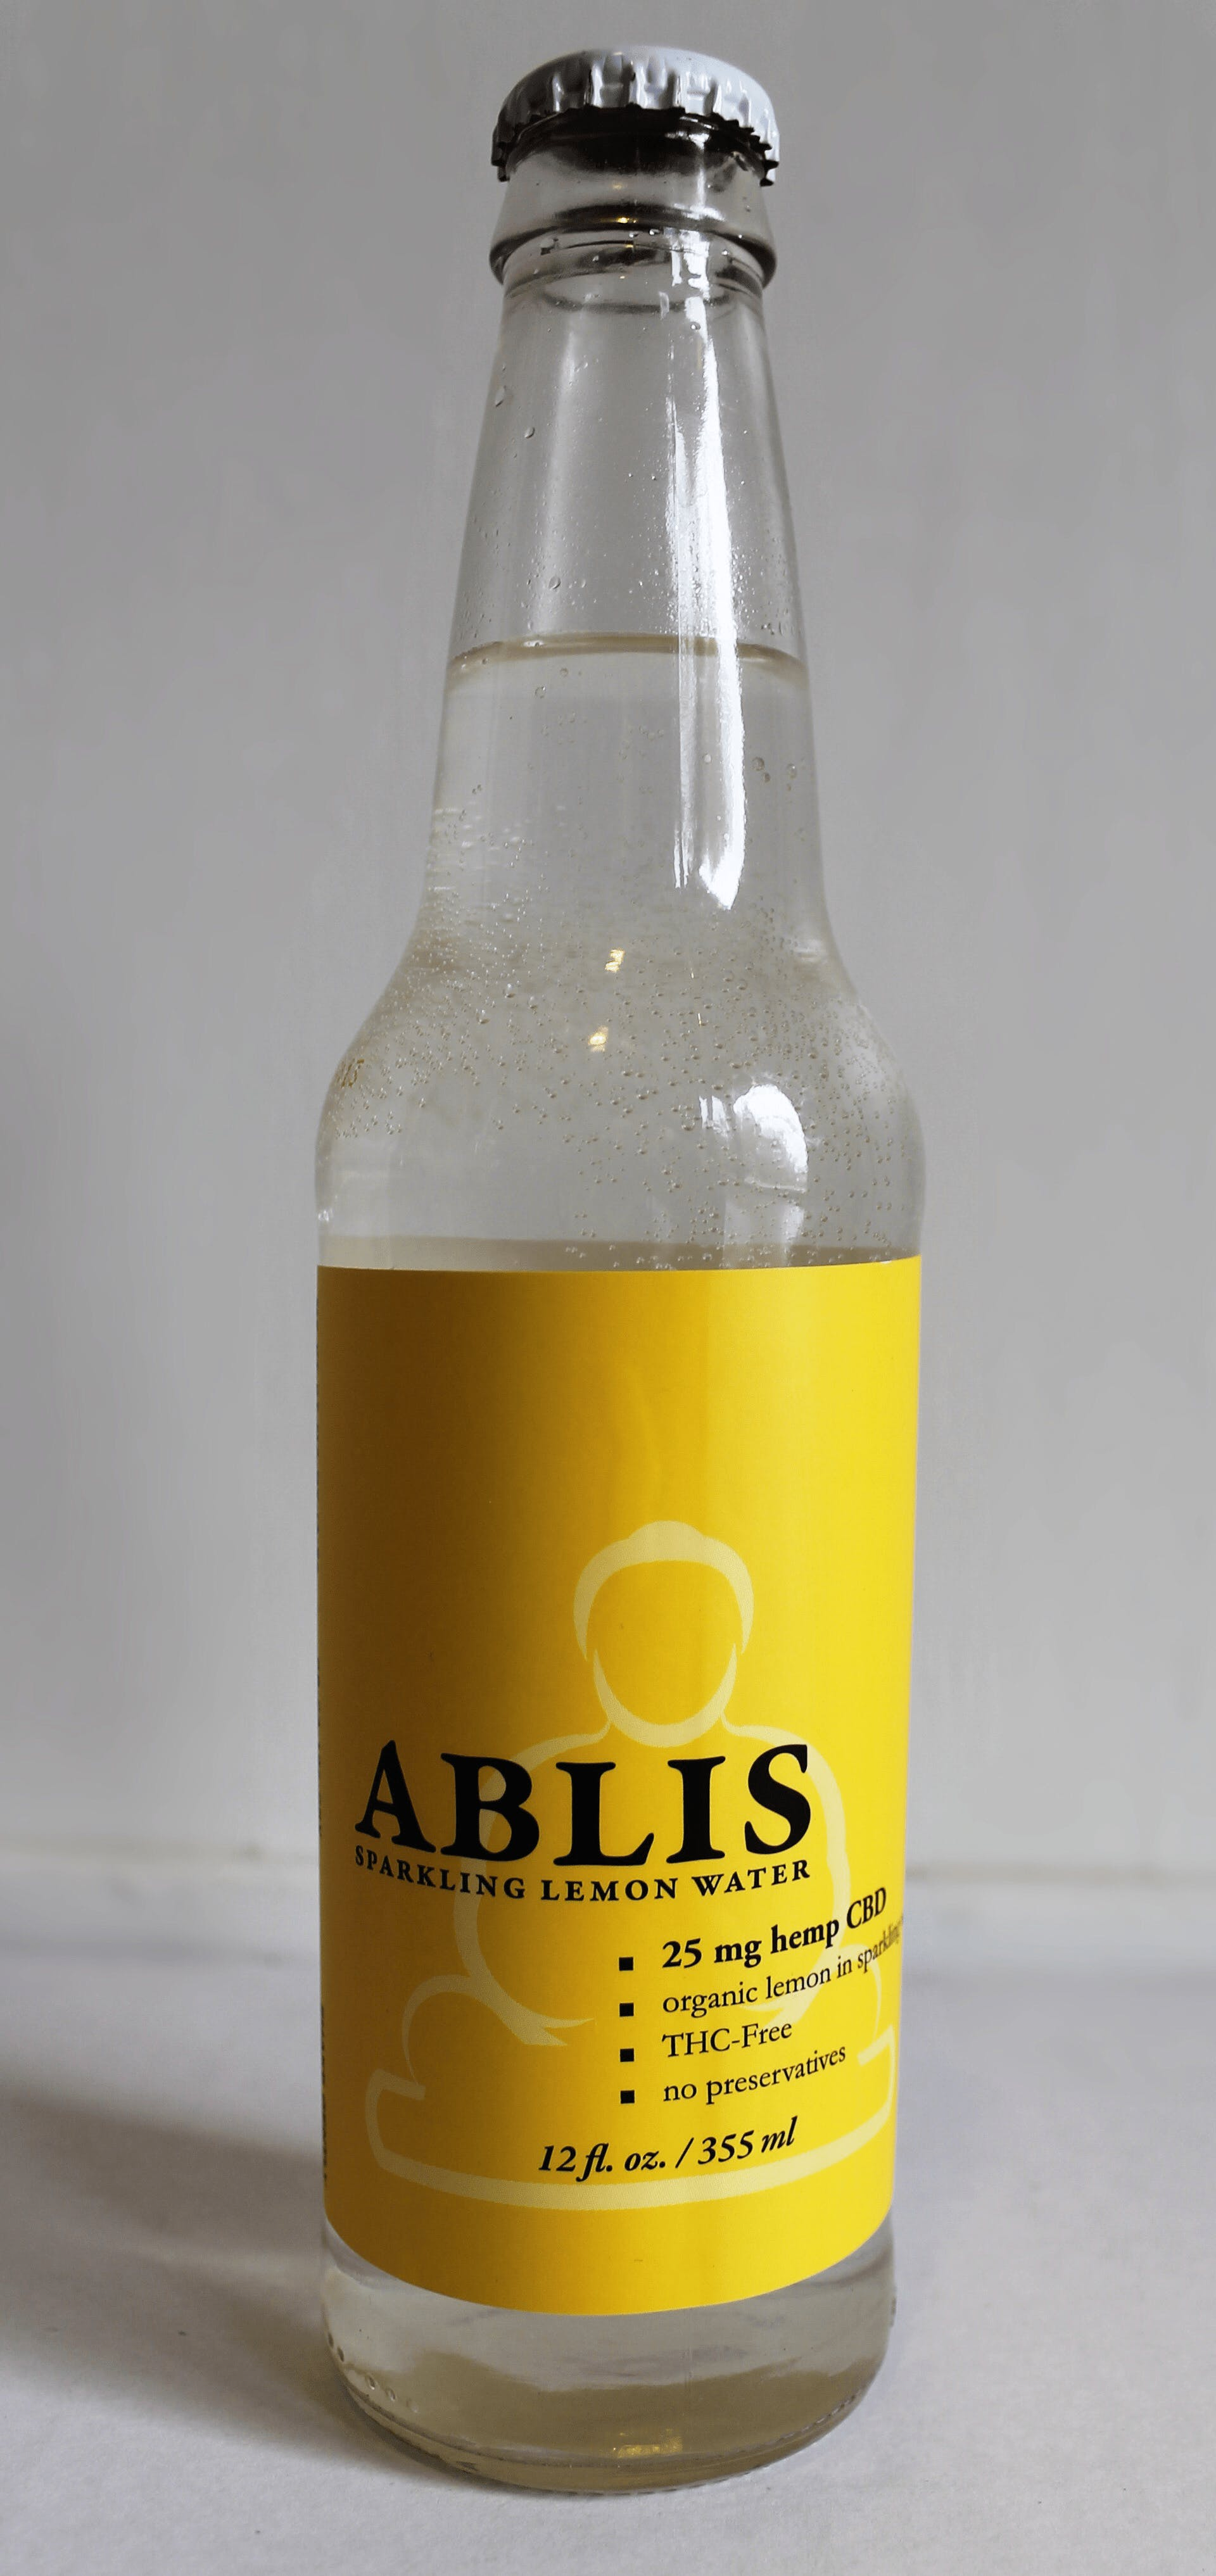 drink-ablis-sparkling-lemon-water-25mg-cbd